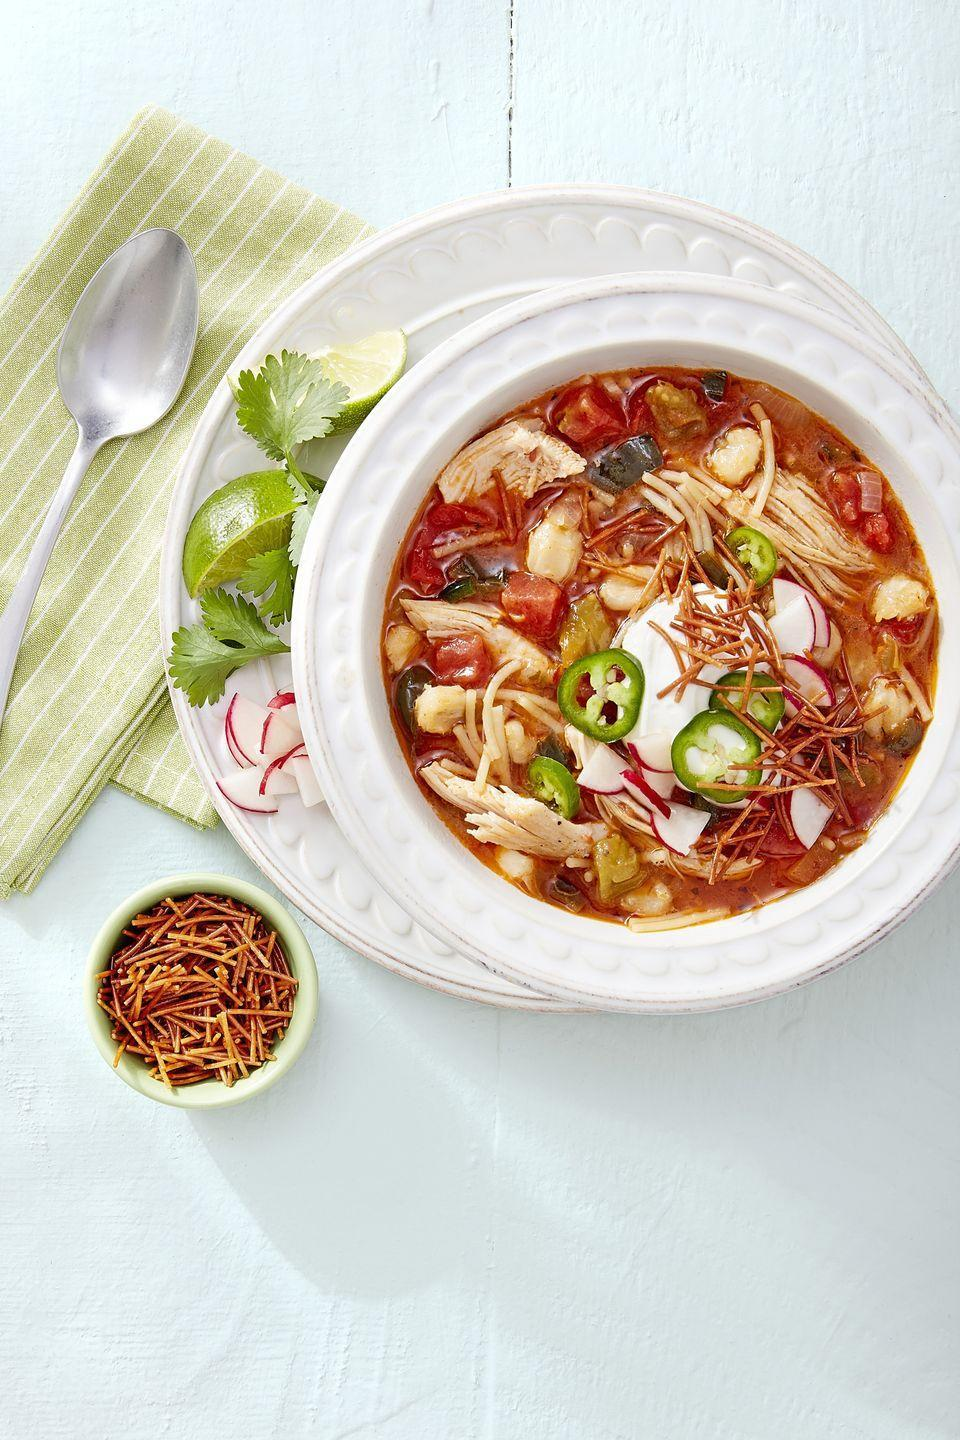 "<p>Fideo (or cut up spaghetti) takes away the mess factor of long stringy spaghetti, while still delivering the same great taste.</p><p><strong><a href=""https://www.countryliving.com/food-drinks/a16571302/chicken-and-fideo-posole-recipe/"" rel=""nofollow noopener"" target=""_blank"" data-ylk=""slk:Get the recipe"" class=""link rapid-noclick-resp"">Get the recipe</a>.</strong></p><p><a class=""link rapid-noclick-resp"" href=""https://www.amazon.com/Cook-Home-Stainless-Stockpot-Saucepot/dp/B012OIVV1C/?tag=syn-yahoo-20&ascsubtag=%5Bartid%7C10050.g.3569%5Bsrc%7Cyahoo-us"" rel=""nofollow noopener"" target=""_blank"" data-ylk=""slk:SHOP SOUP POTS"">SHOP SOUP POTS</a></p>"